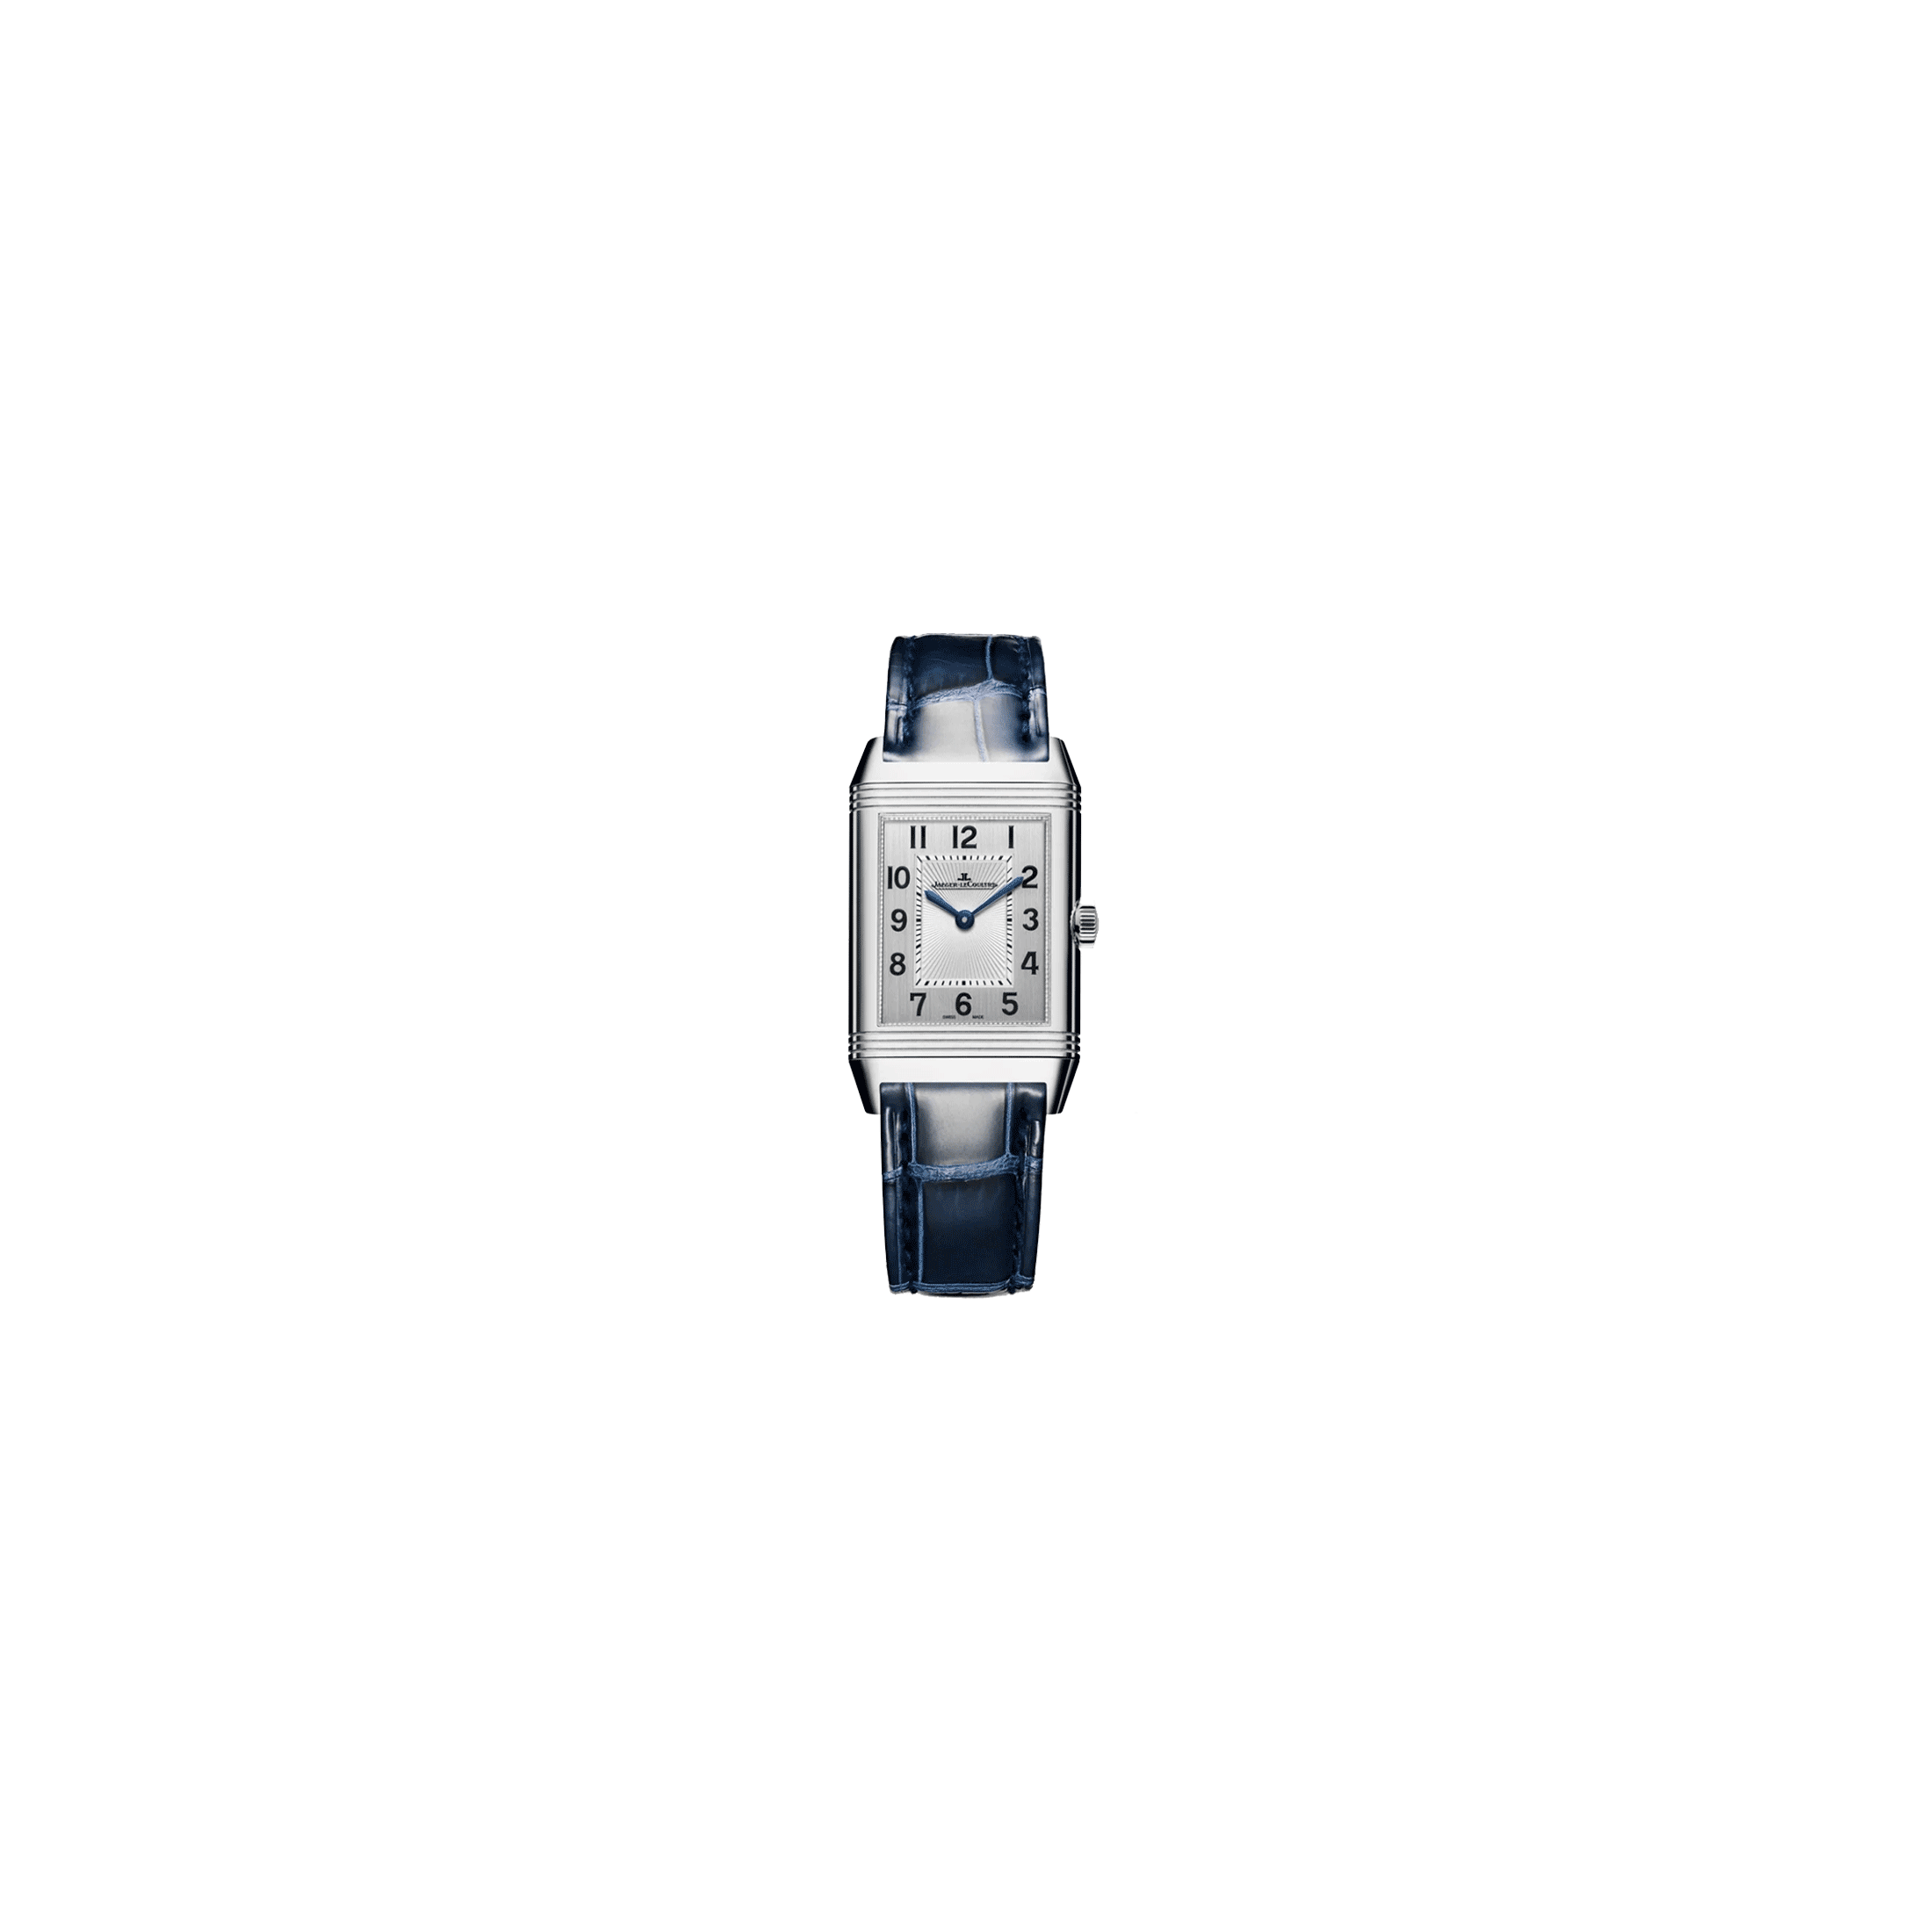 Jaeger LeCoultre Reverso Classic Medium Duetto automatic watch silver dial blue leather strap